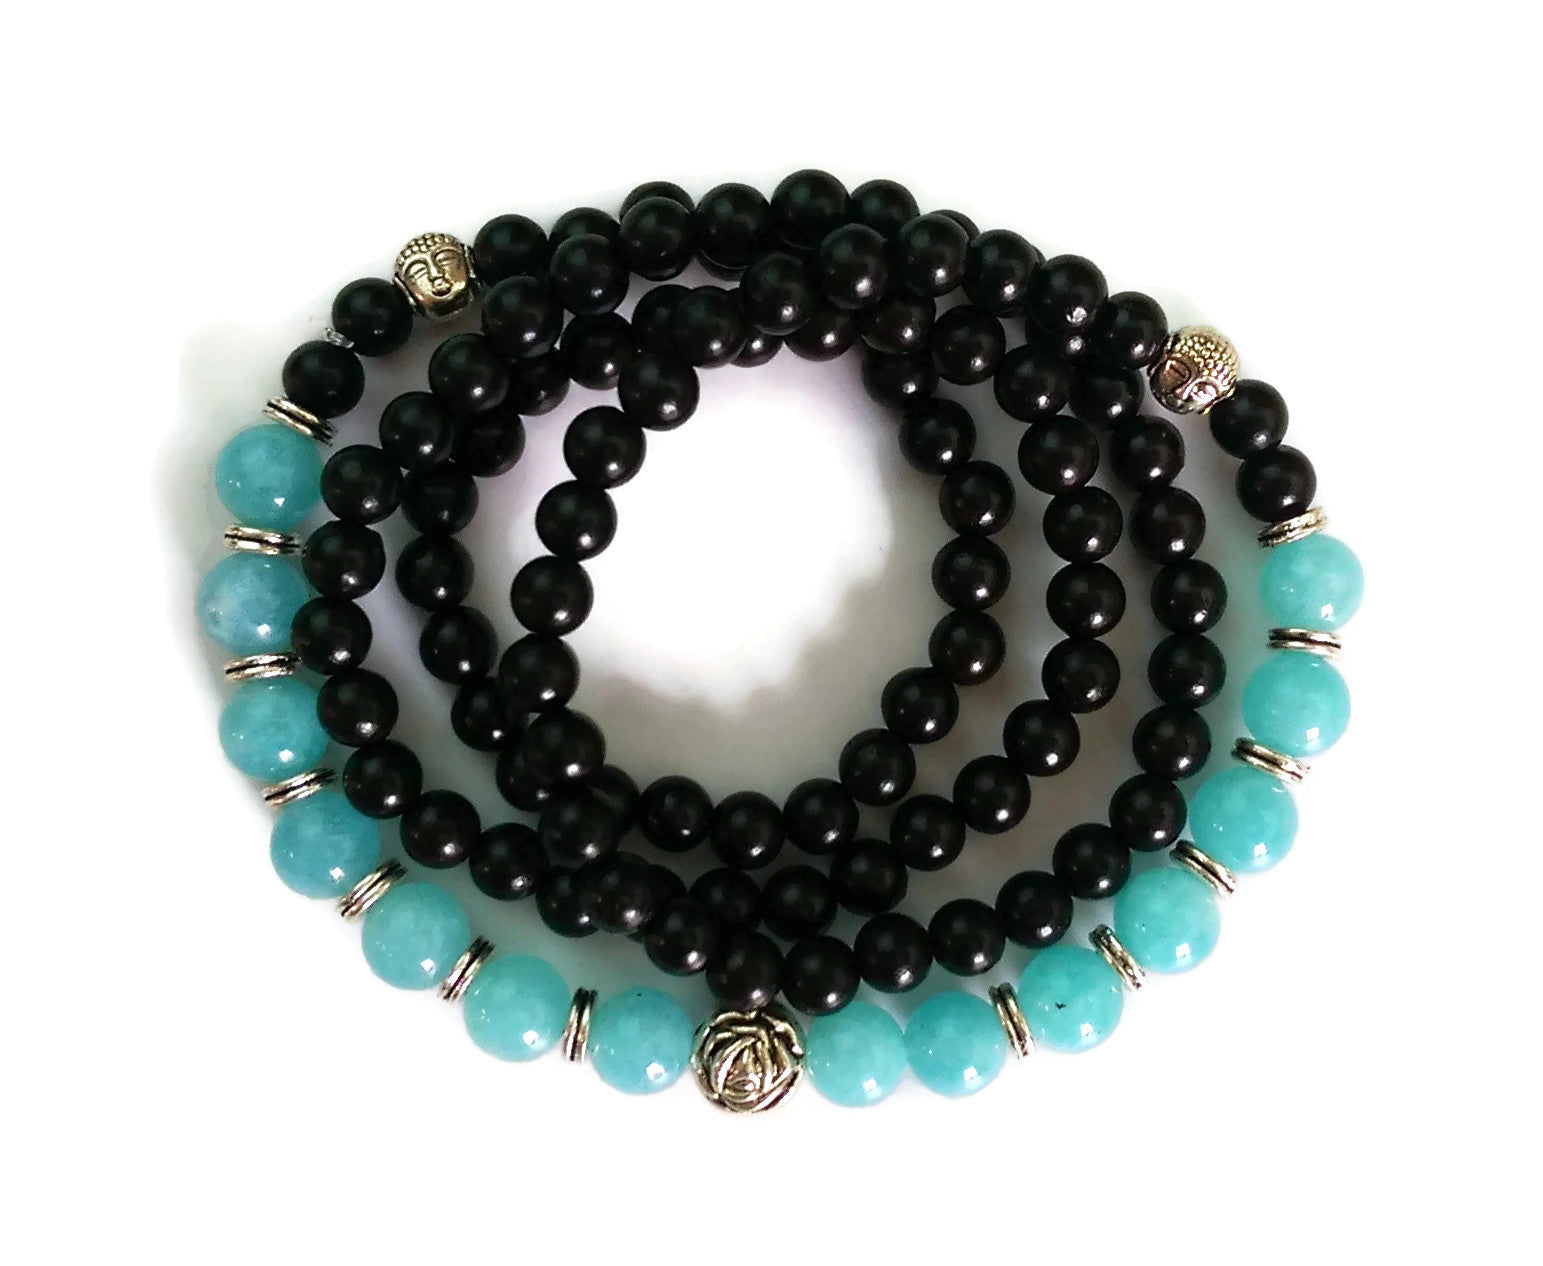 6mm Ebony Wood and 8mm Aquamarine Crystal Wrist Wrap Mala Bracelet with Silver Lotus